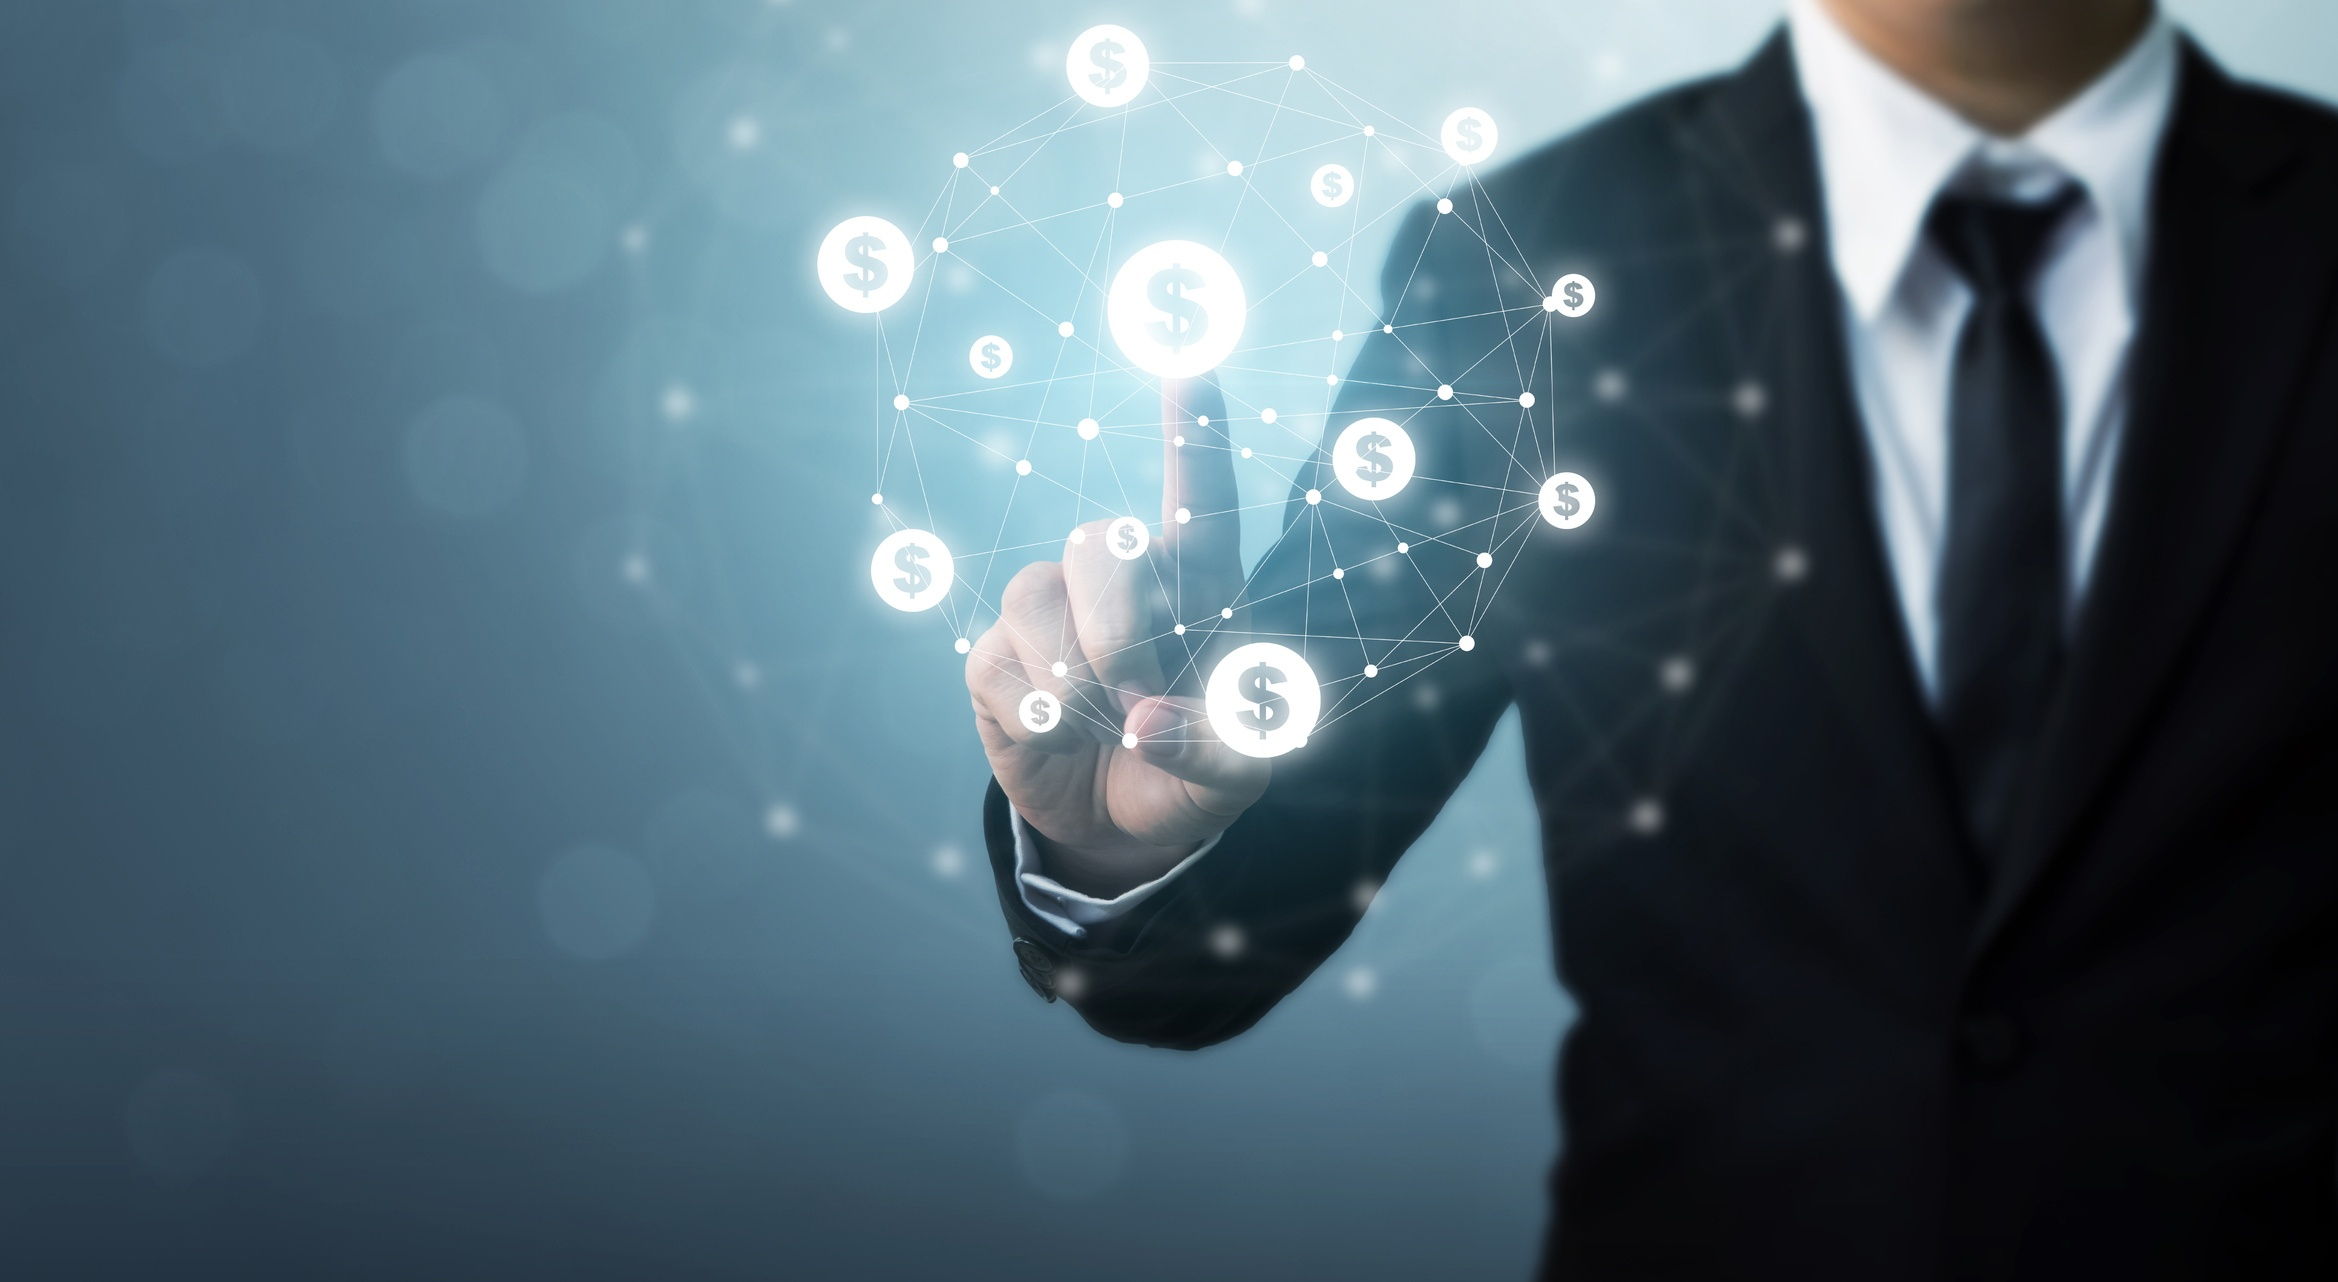 man in suit touching floating money icon